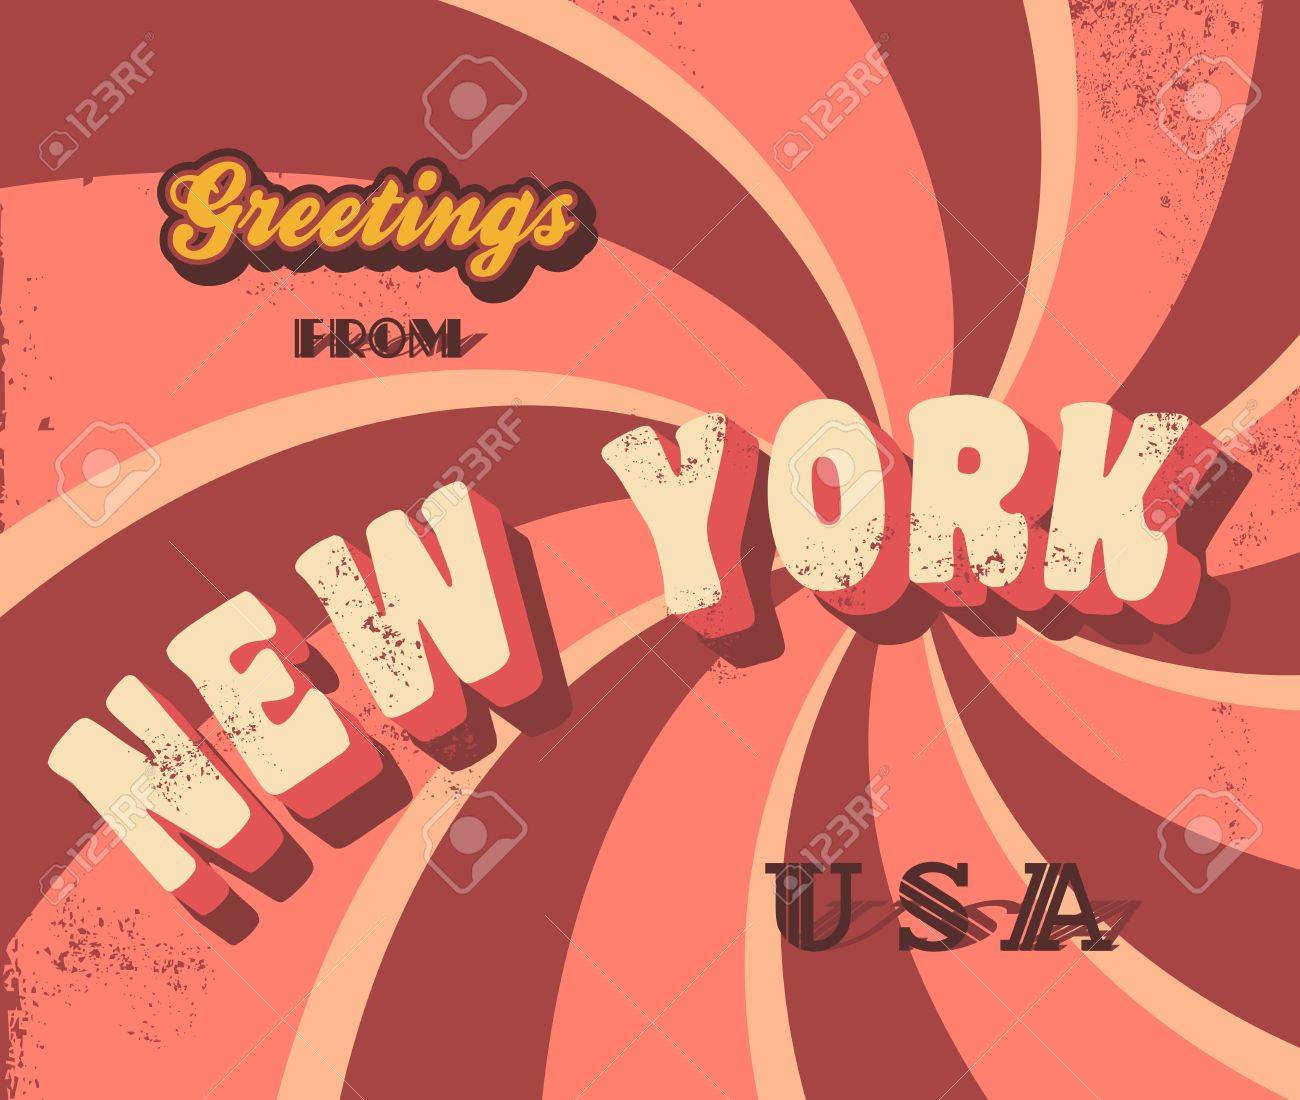 New York Greeting Sign Royalty Free Cliparts Vectors And Stock